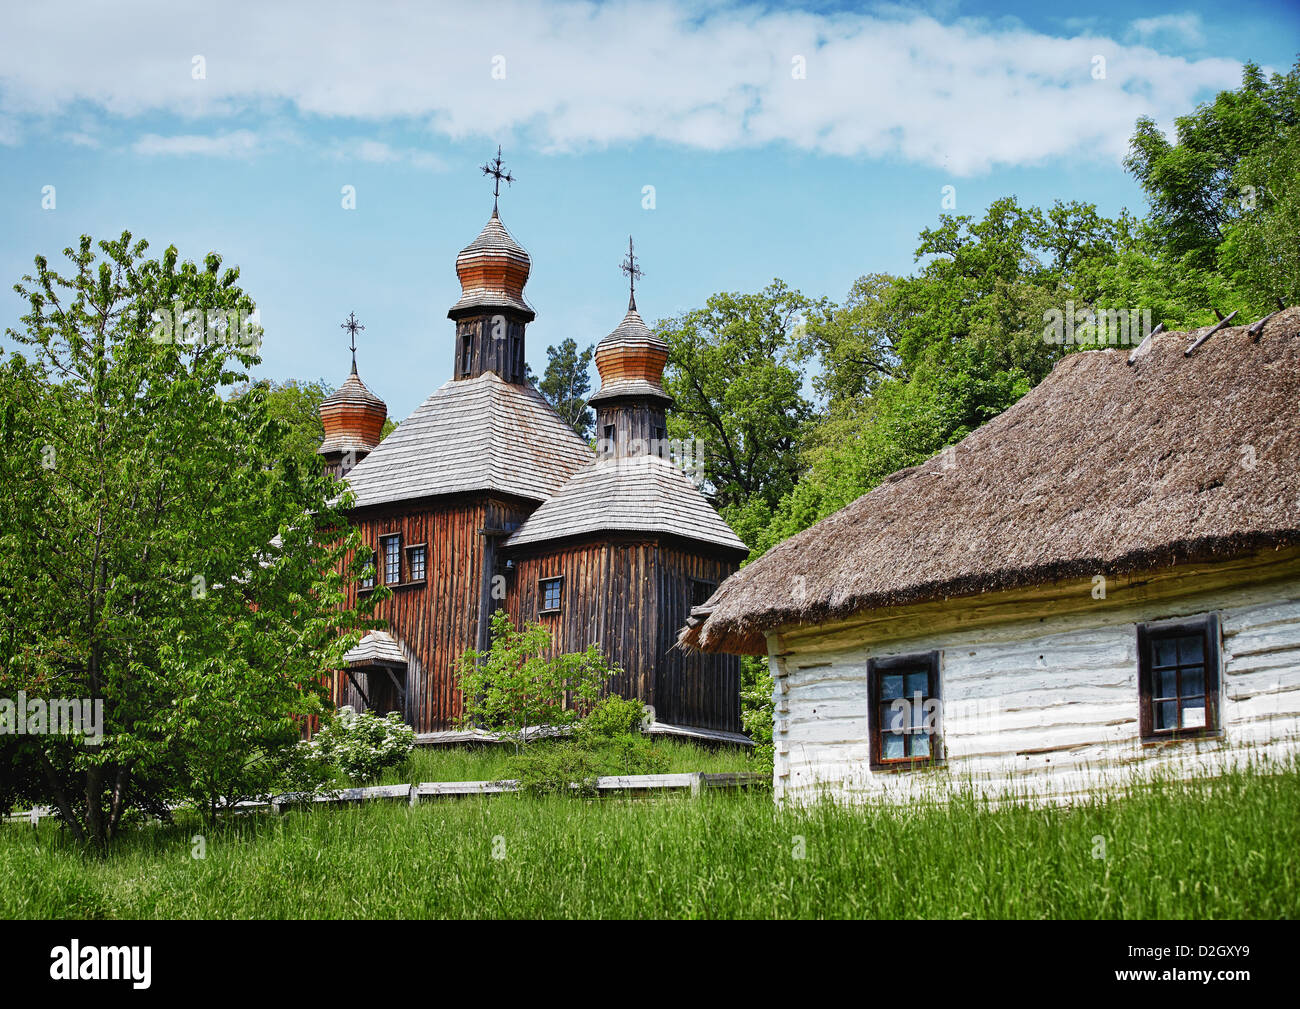 Traditional Slavonic village with wooden orthodox church and house with straw roof - Stock Image